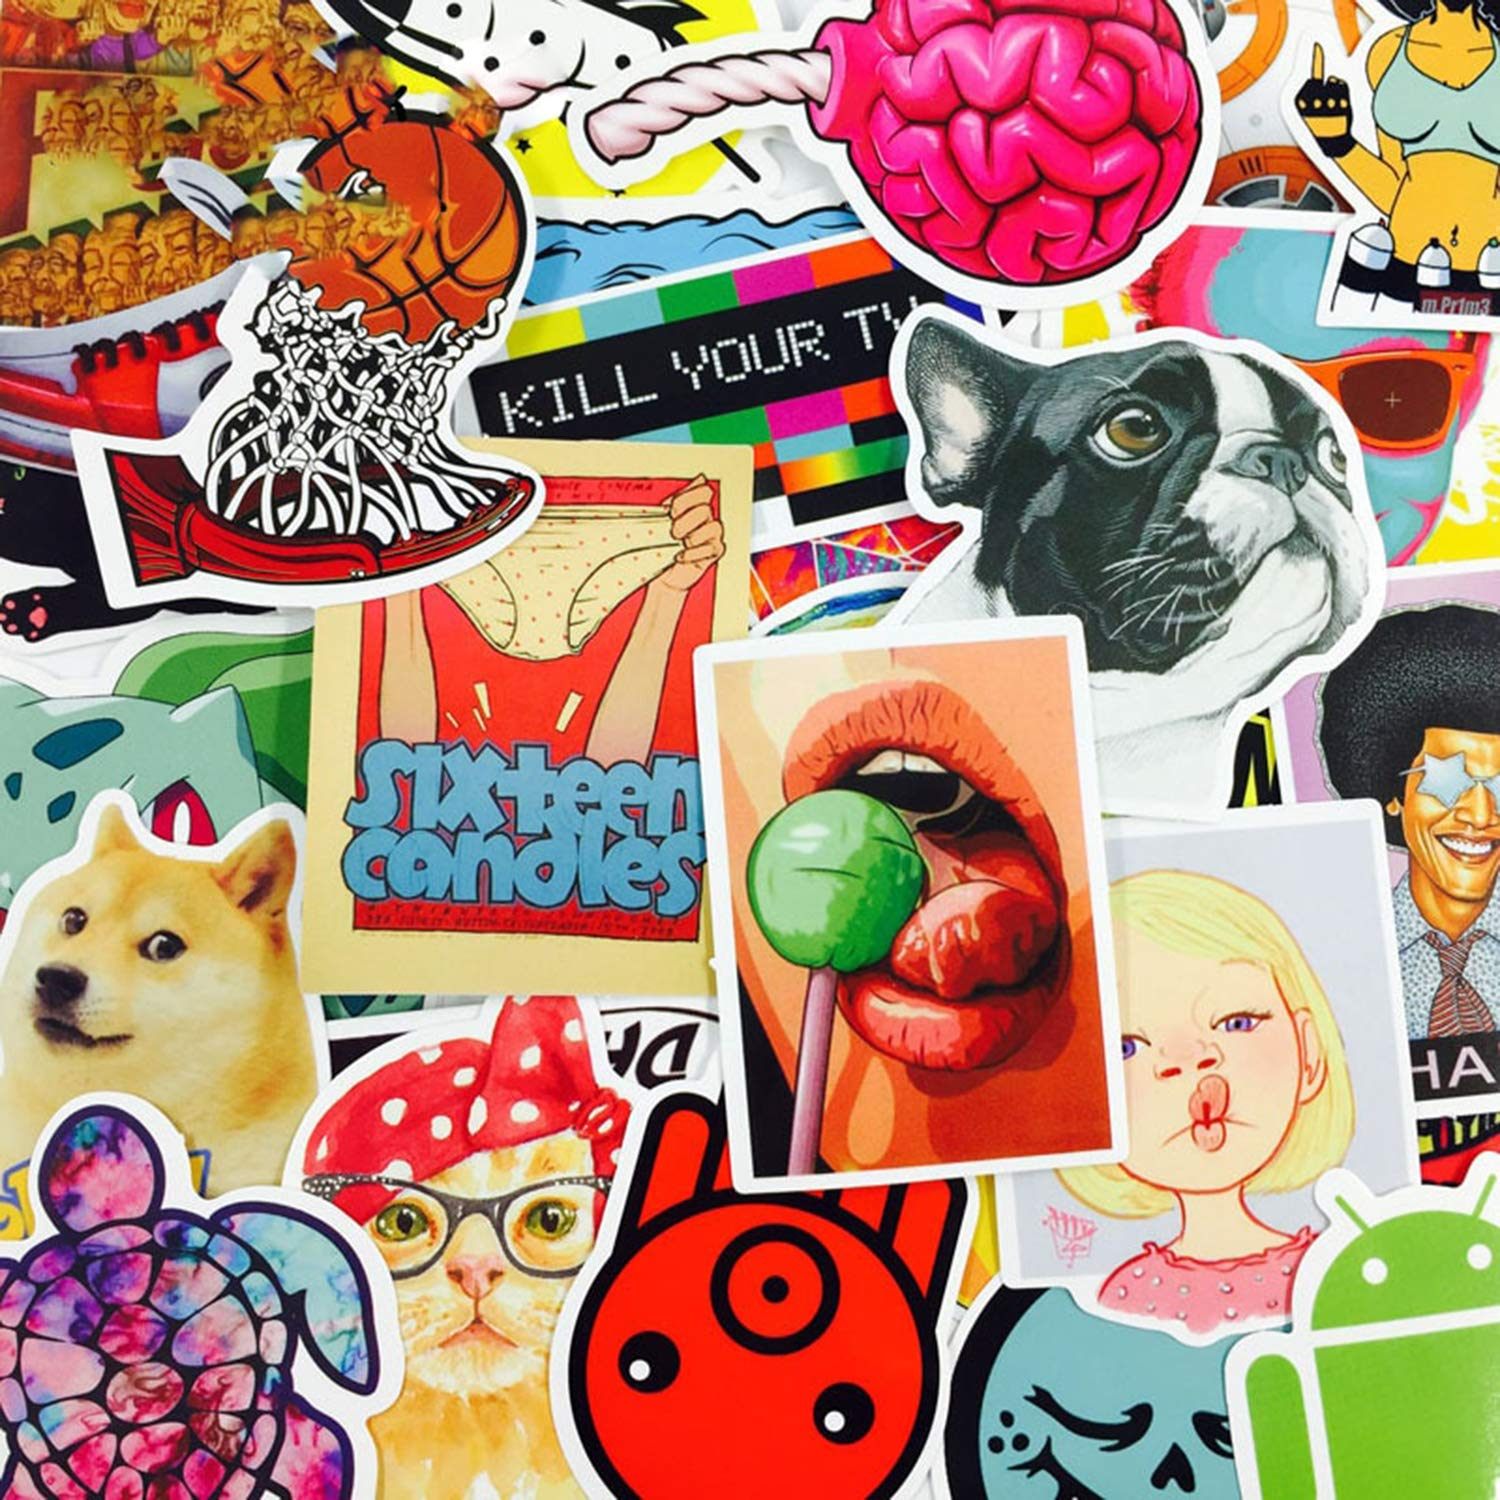 4000pcs Supper Mixed Funny Cool Stickers for Laptop Water Bottle Luggage Snowboard Bicycle Skateboard Decal for Kids Teens Adult Waterproof Aesthetic Stickers